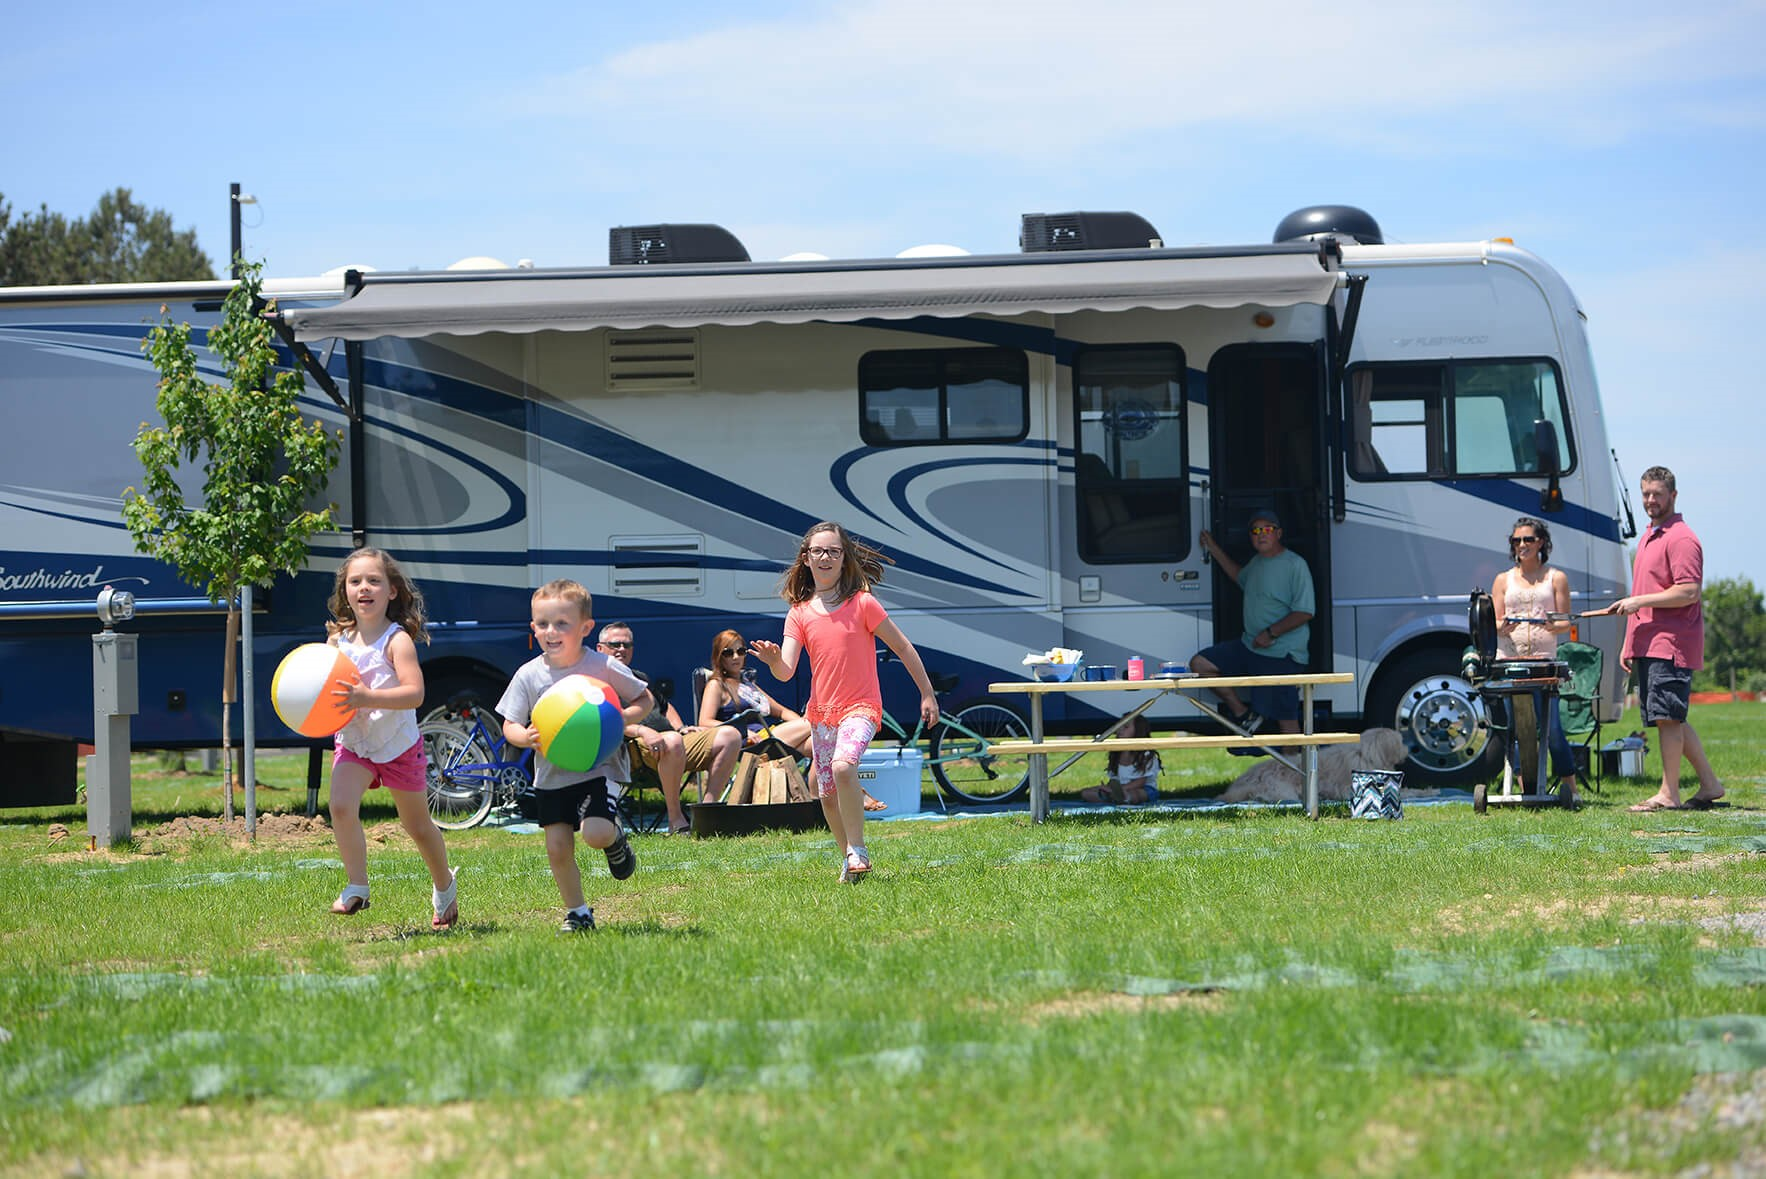 The future of RVing is bright, read on to learn more!